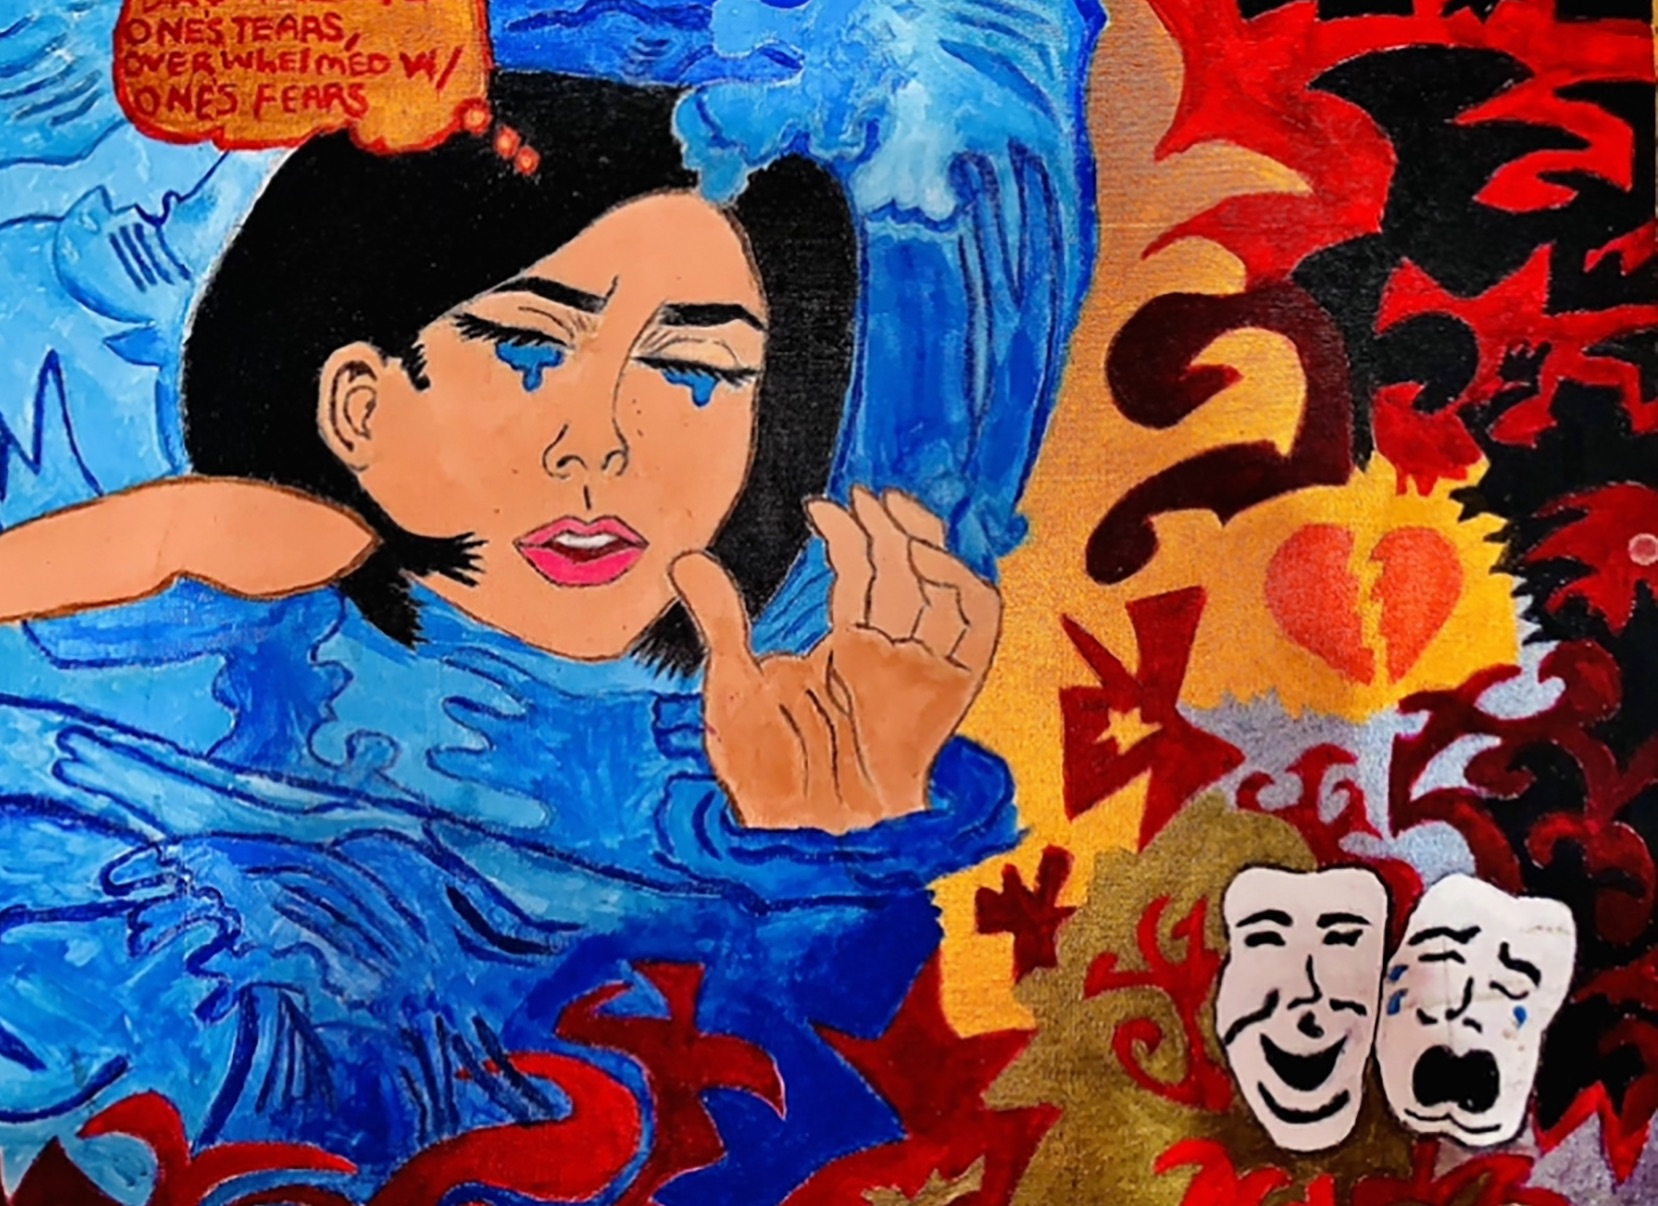 Artwork of a girl with black hair crying amid water, masks, and a broken heart.